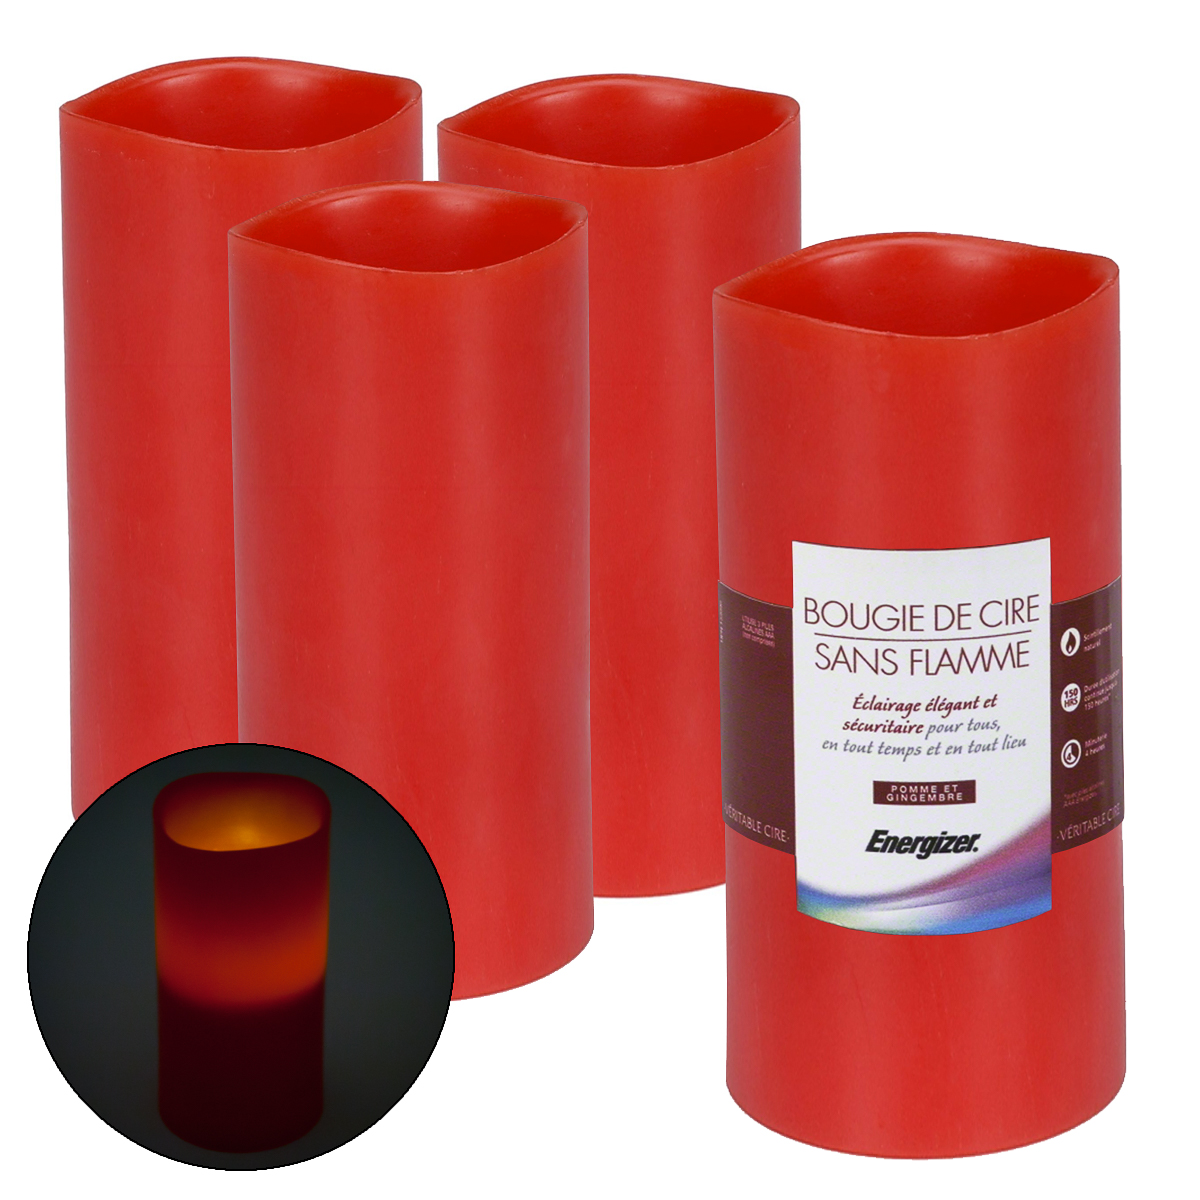 4 energizer led flameless wax candle timer flicker pillar ginger apple scented walmartcom - Flameless Candles With Timer